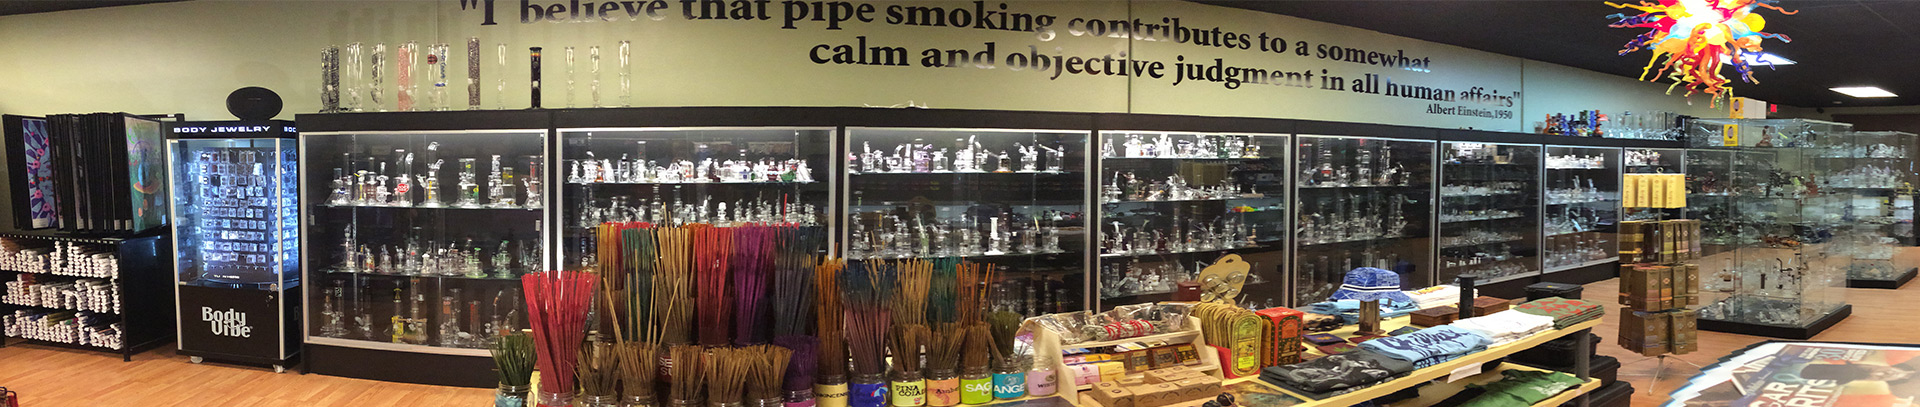 treasure-chest-smoke-shop-south-west-florida-fl-fort-myers-ft-myers-naples-pipes-water-pipe-vaporizor-rolling-papers